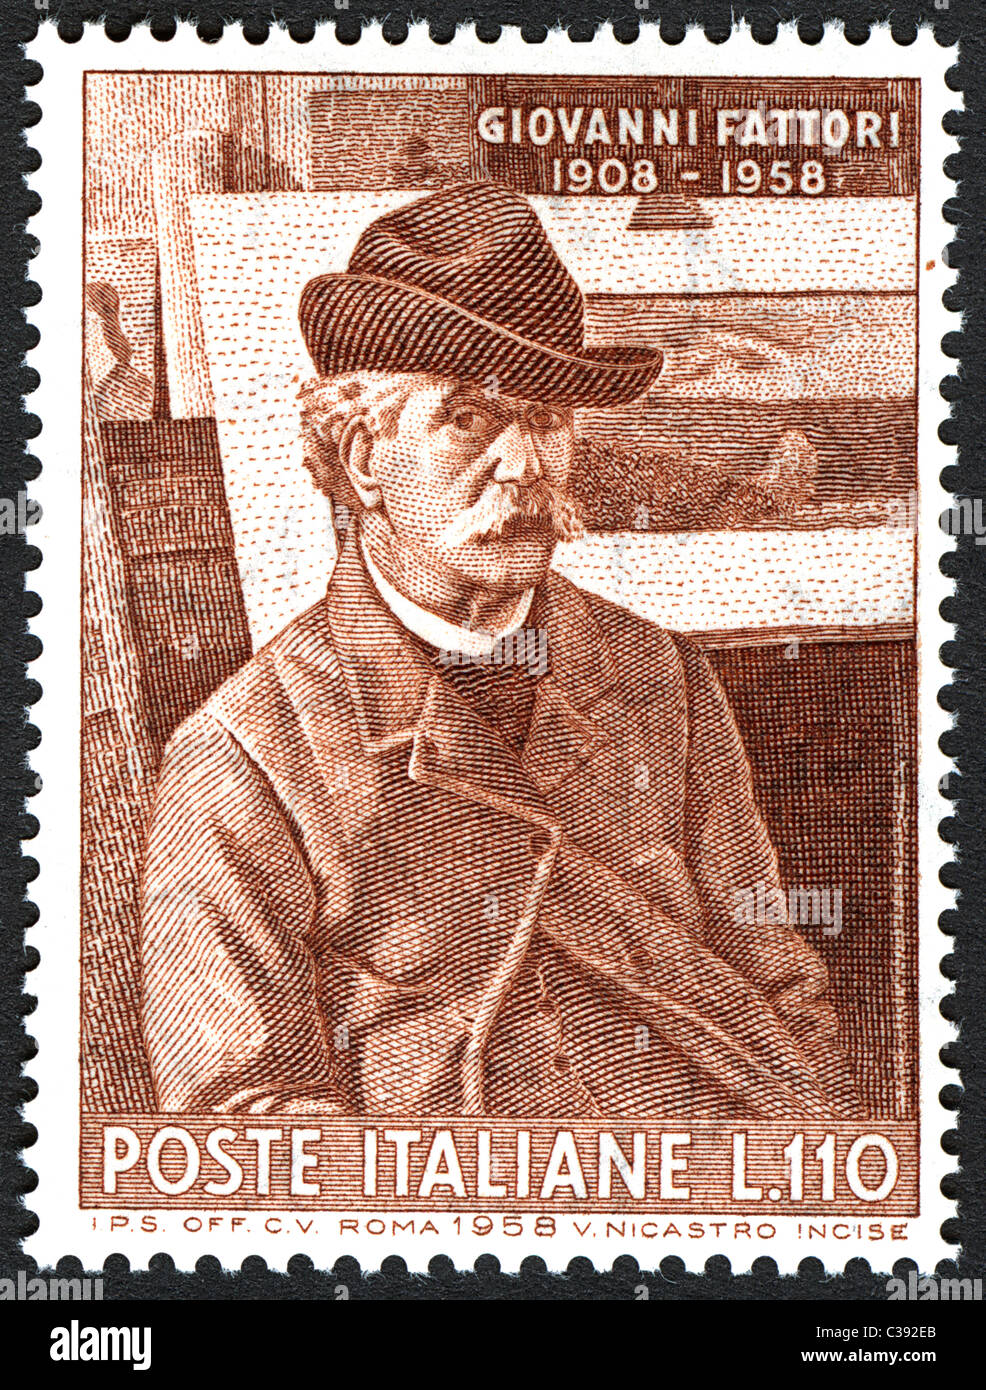 Issue of Italian post office to celebrate the fiftieth anniversary of the death of the painter Giovanni Fattori. - Stock Image